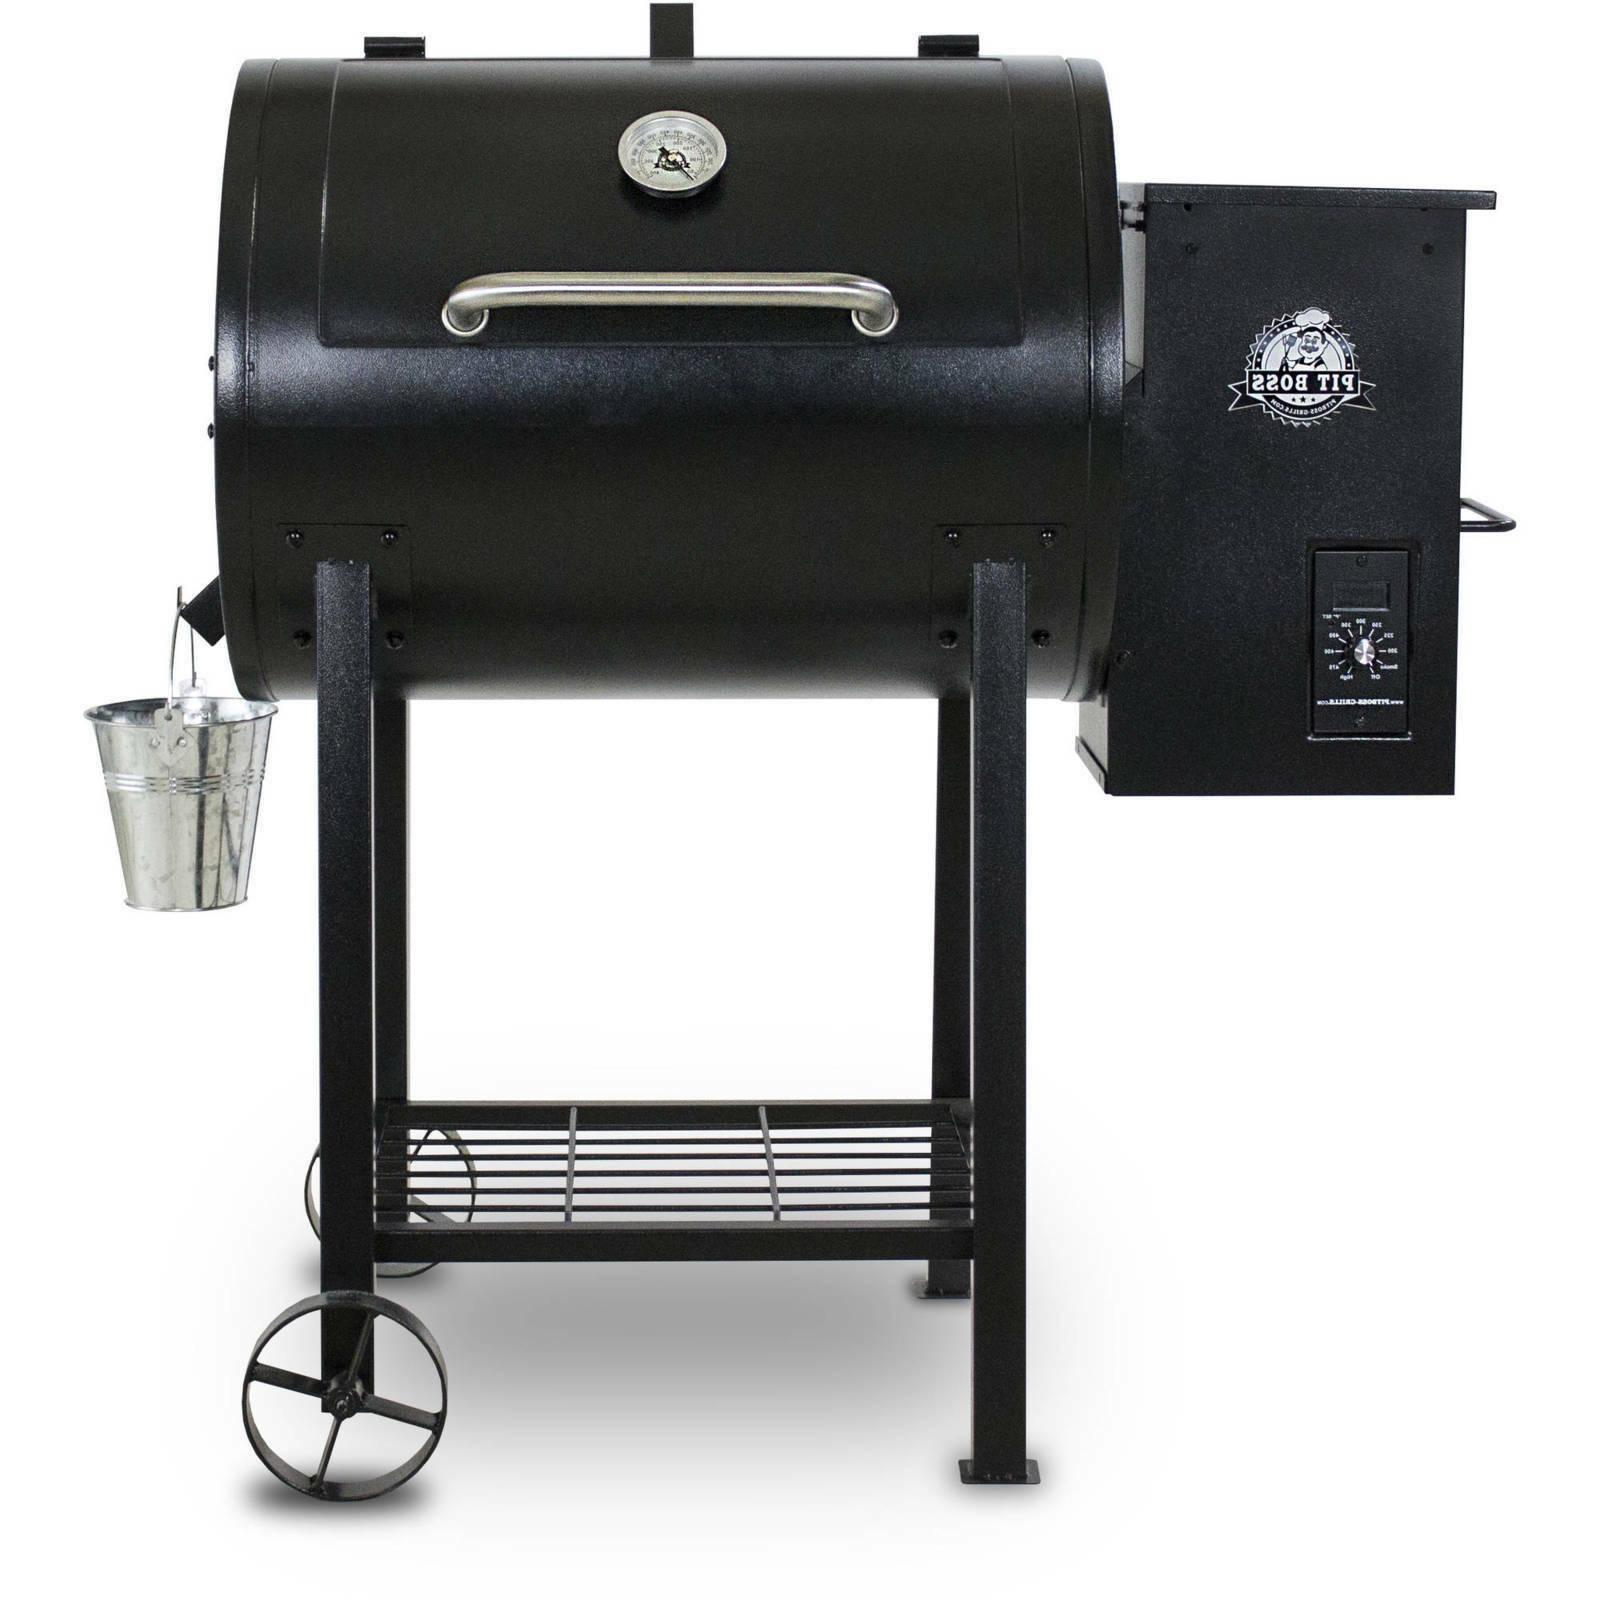 700fb wood fired pellet grill